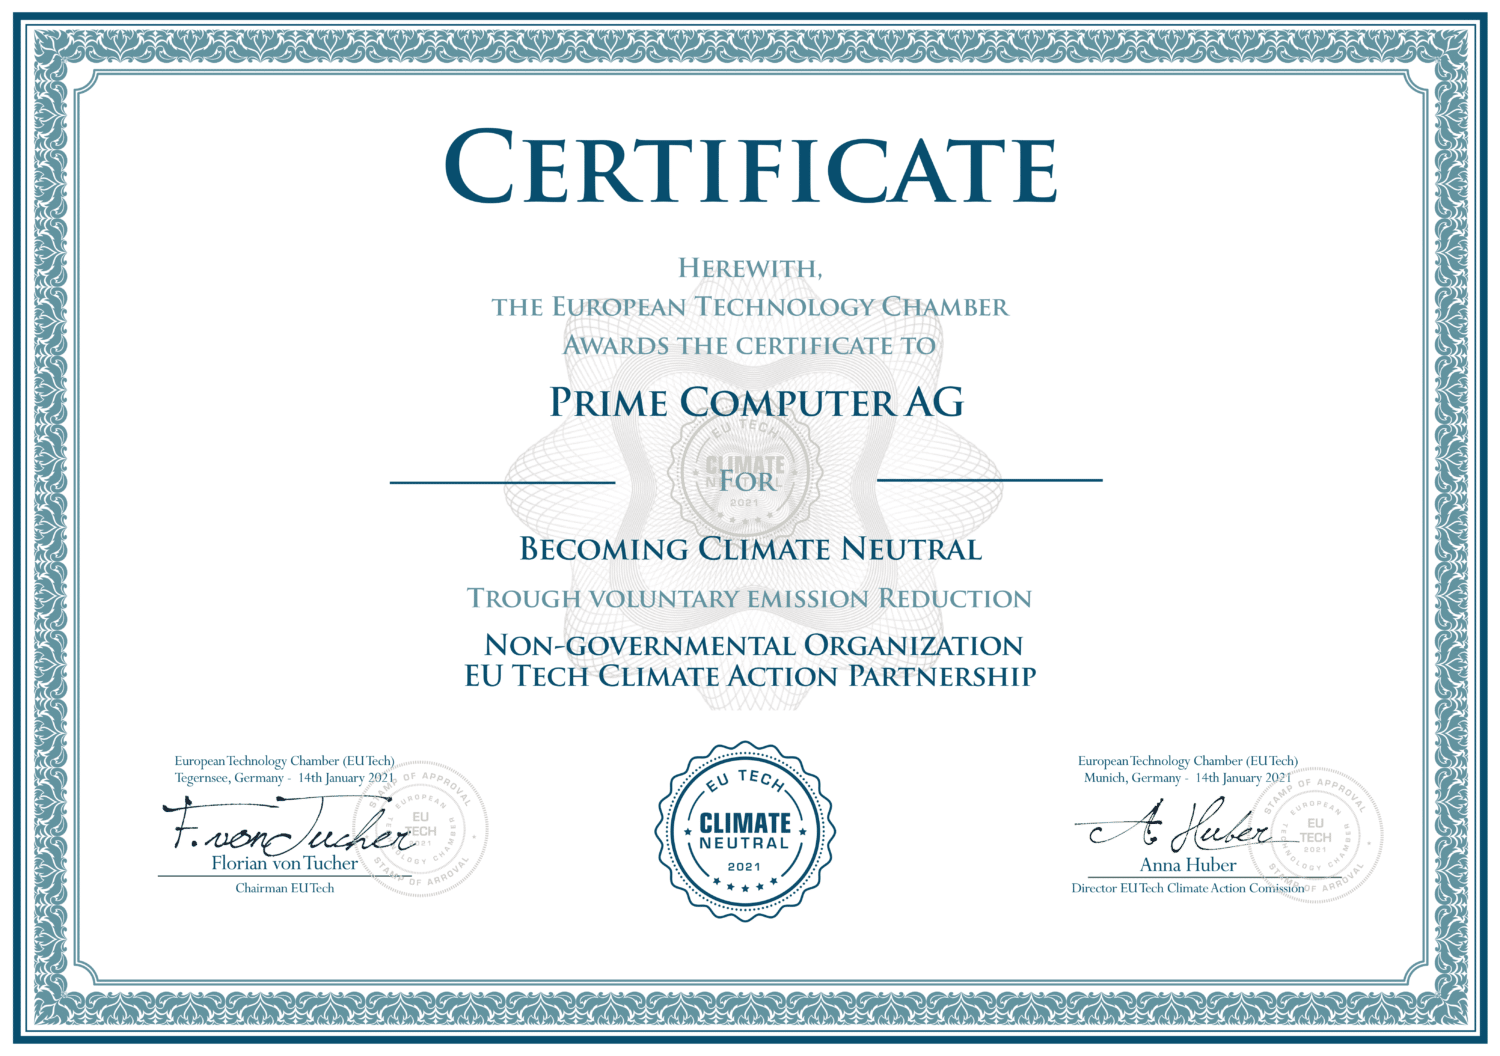 2021_Climate_Neutral_Certificate_Prime_Computer_AG_01